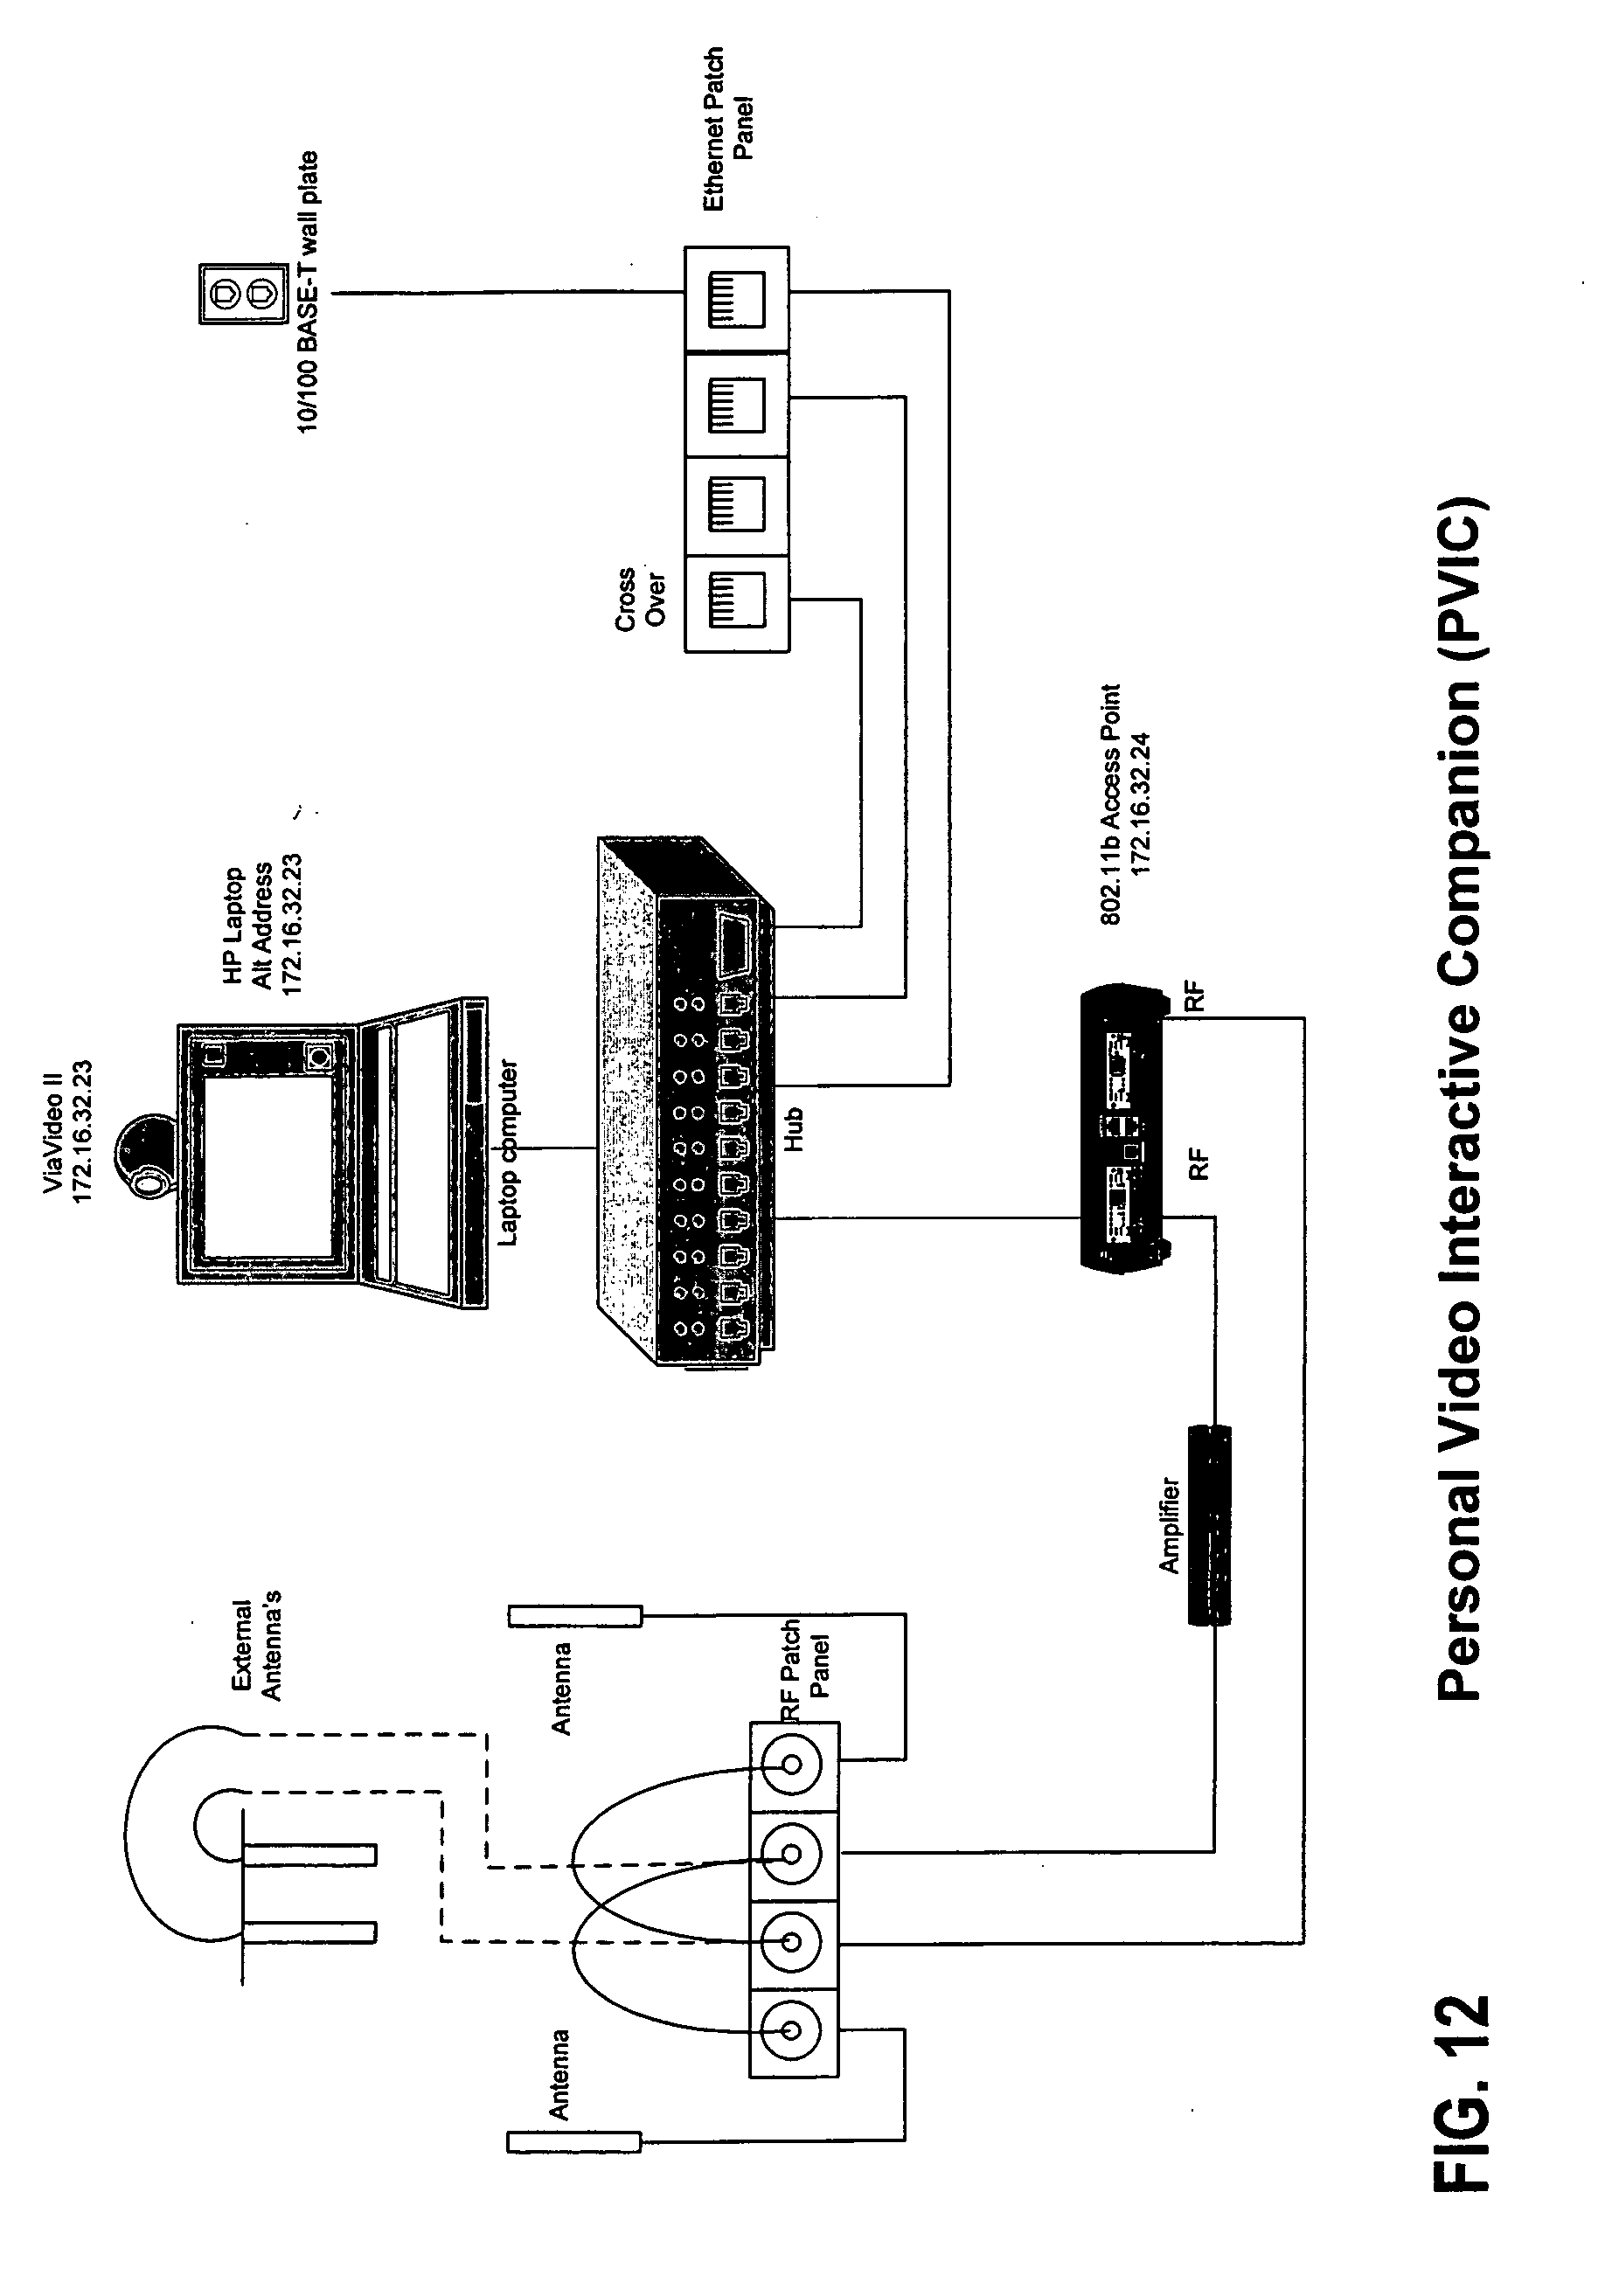 patent us20050099493  audio  data interactive companion  mvic  system